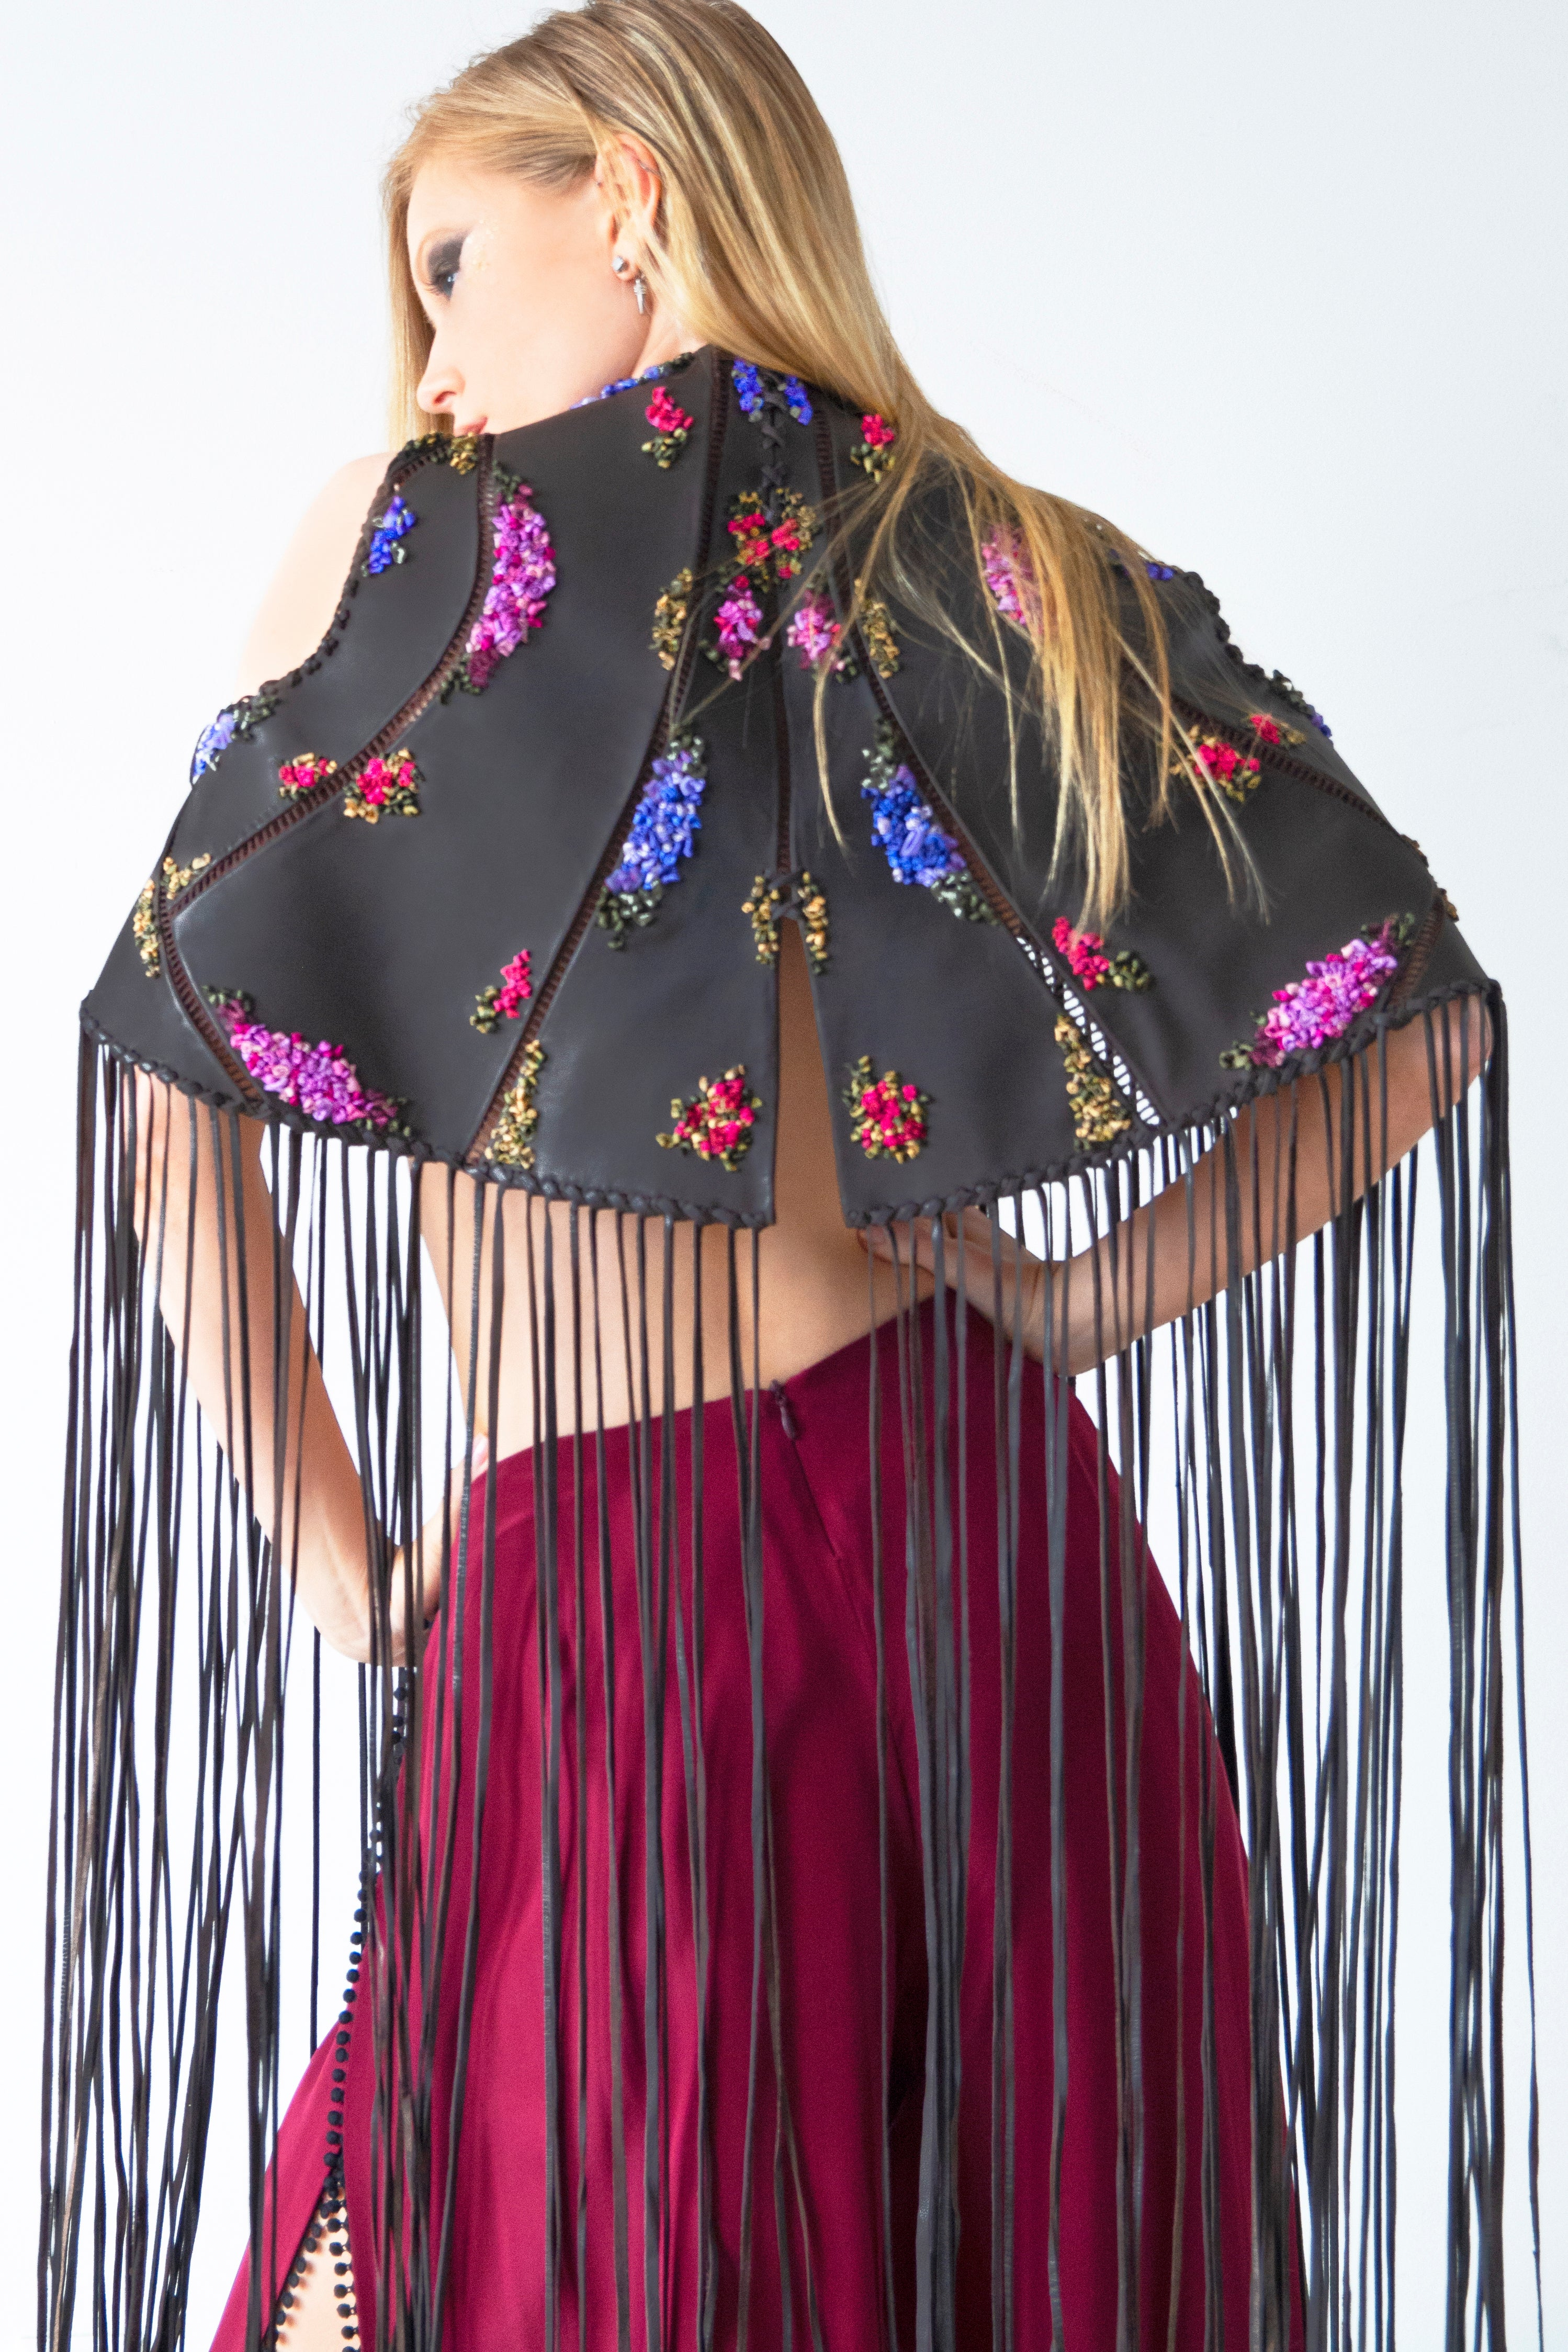 Silk Ribbon Embroidered Leather Jacket with Long Tassels - KxLNewYork